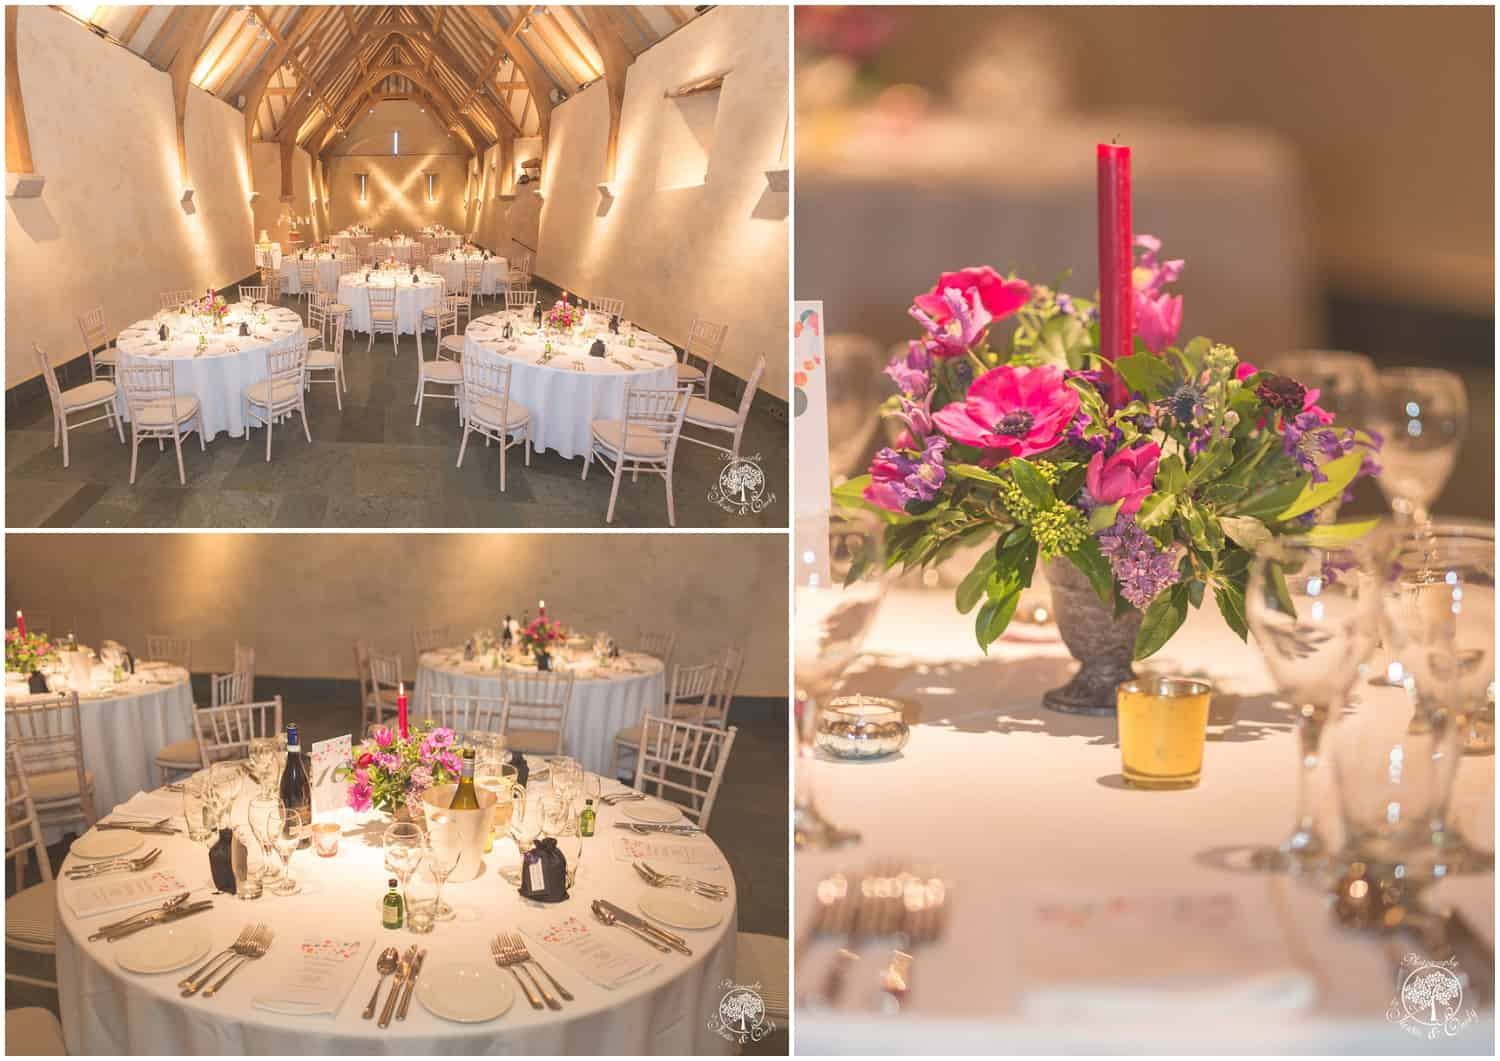 16 Katie & Chris - The Great Barn Devon, Images by Justin Krause